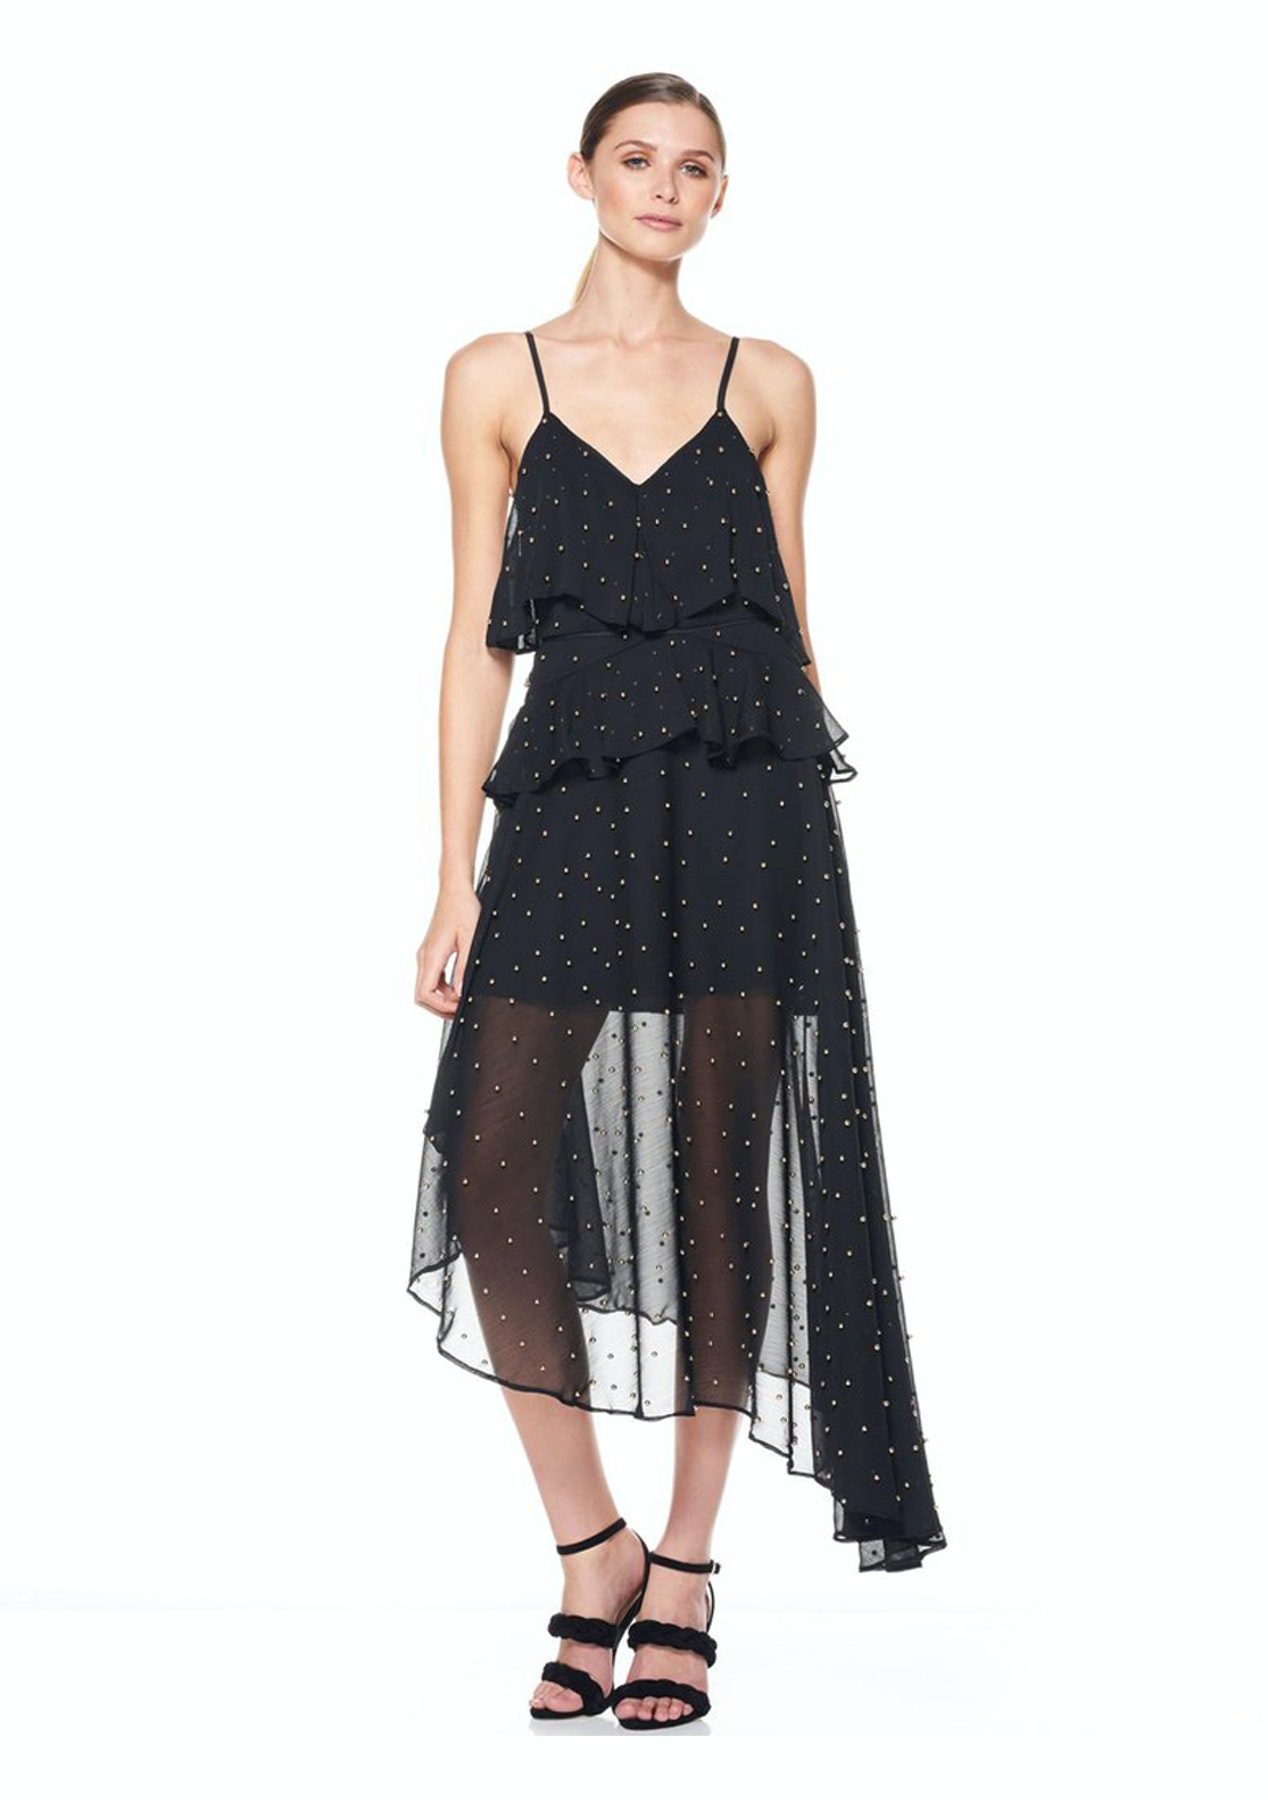 Talulah - Queen Of The Night Midi Dress - Black With Gold Ball Sequin - The  East Order 1c7c6aa21